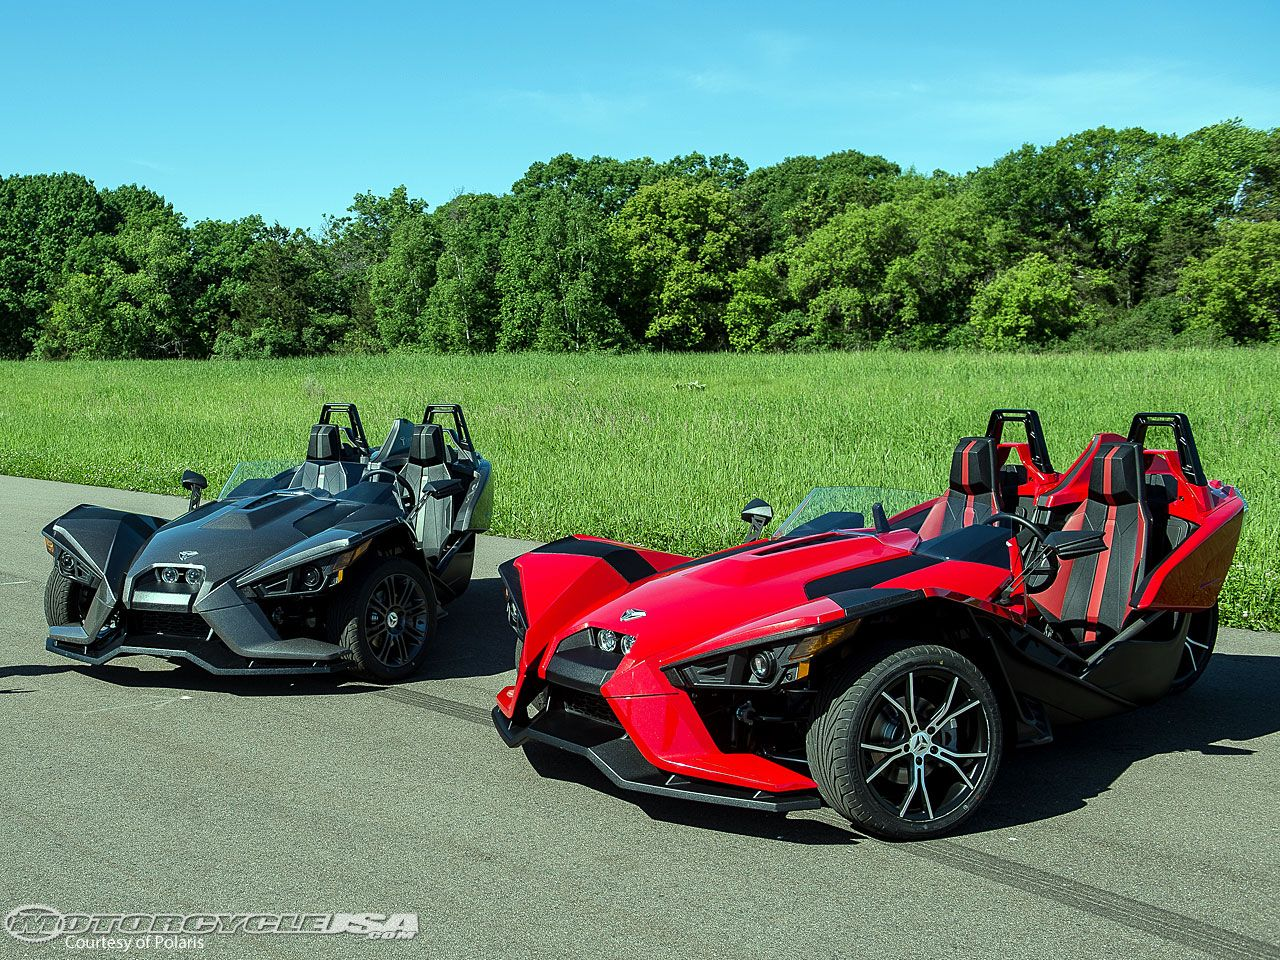 While the aforementioned Campagna T-Rex makes use of a 160 bhp BMW ...